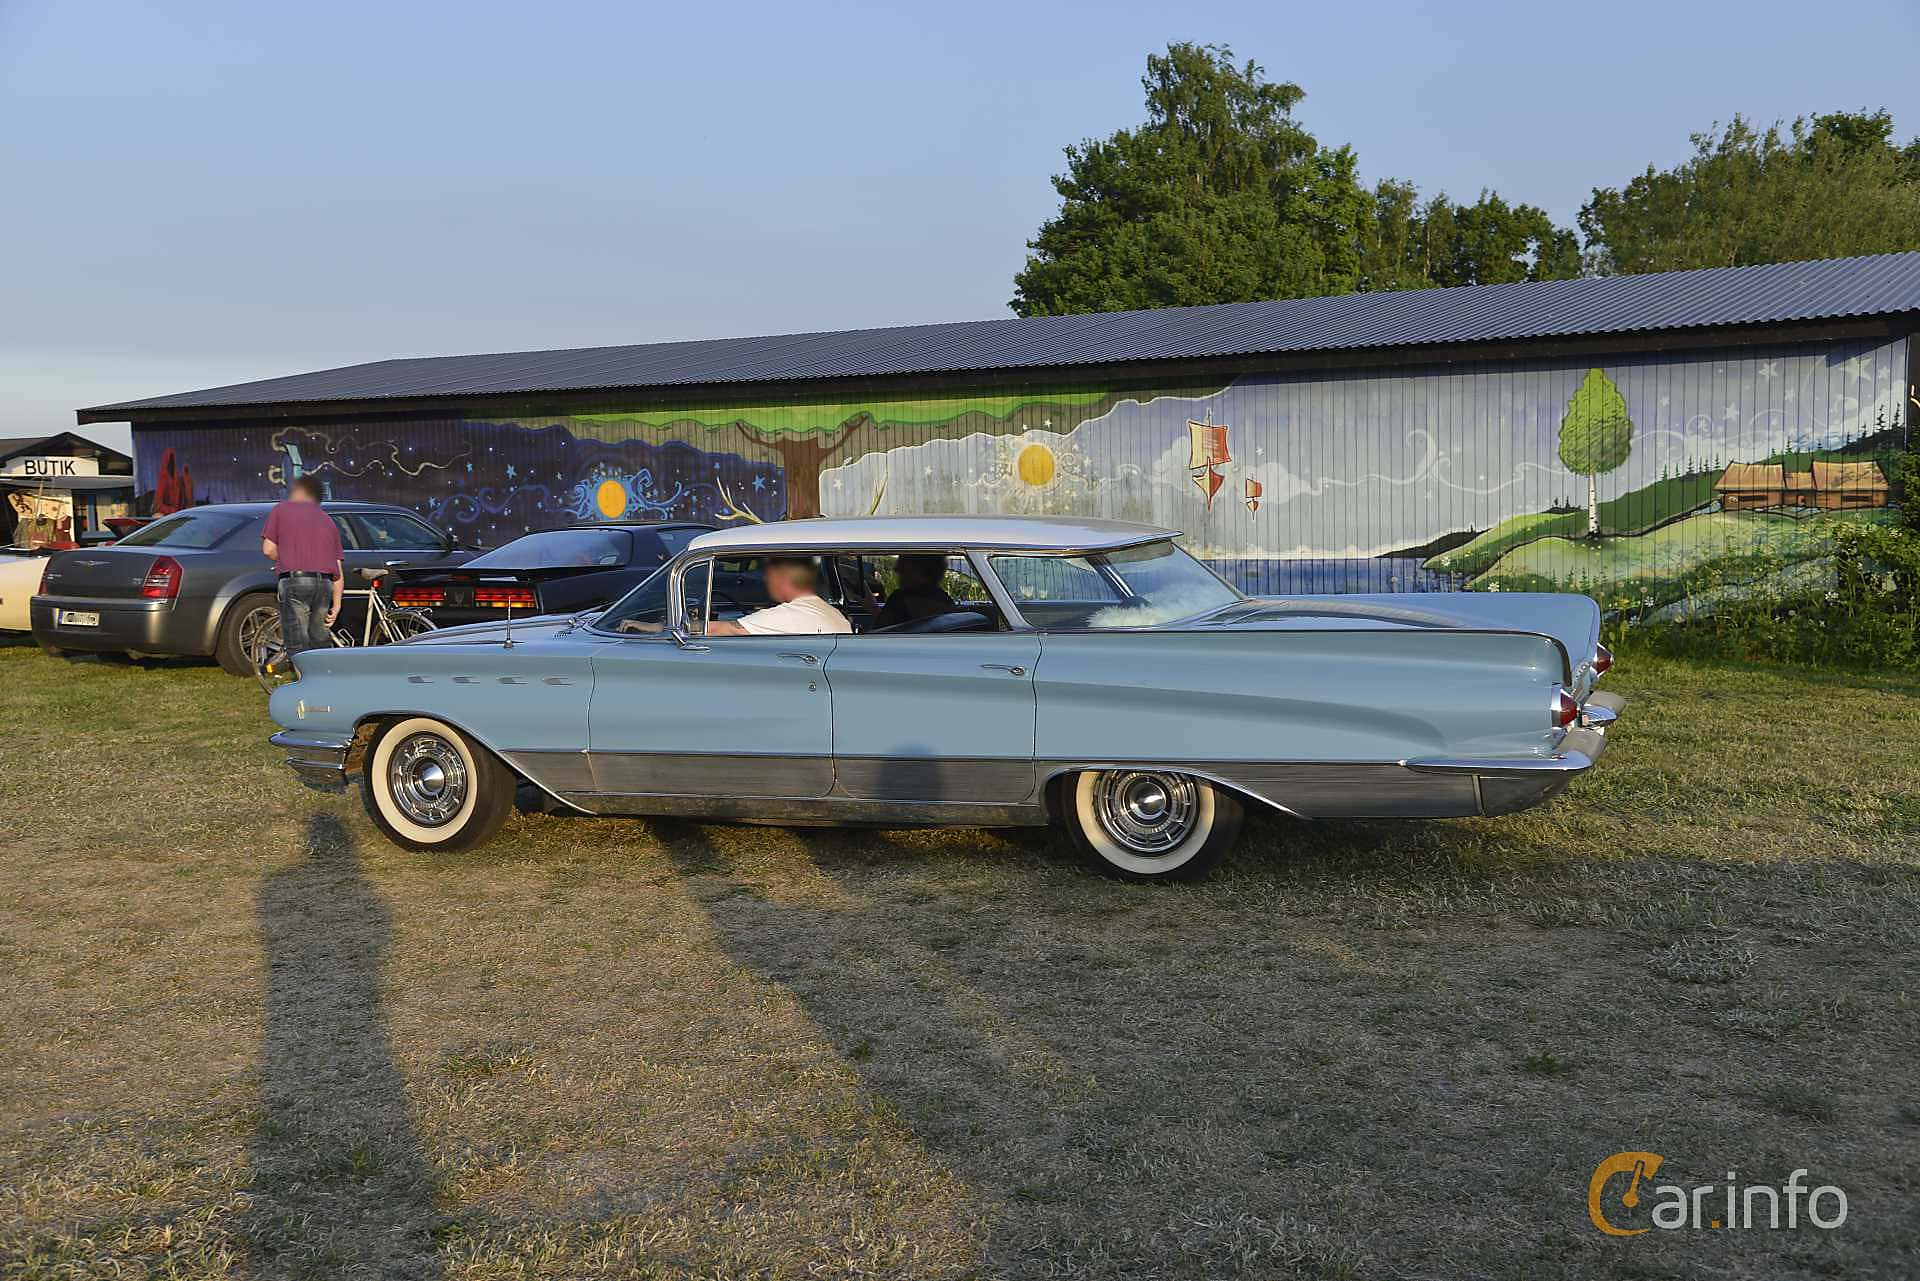 Buick Electra 225 Hardtop 6.6 V8 Automatic, 330hp, 1960